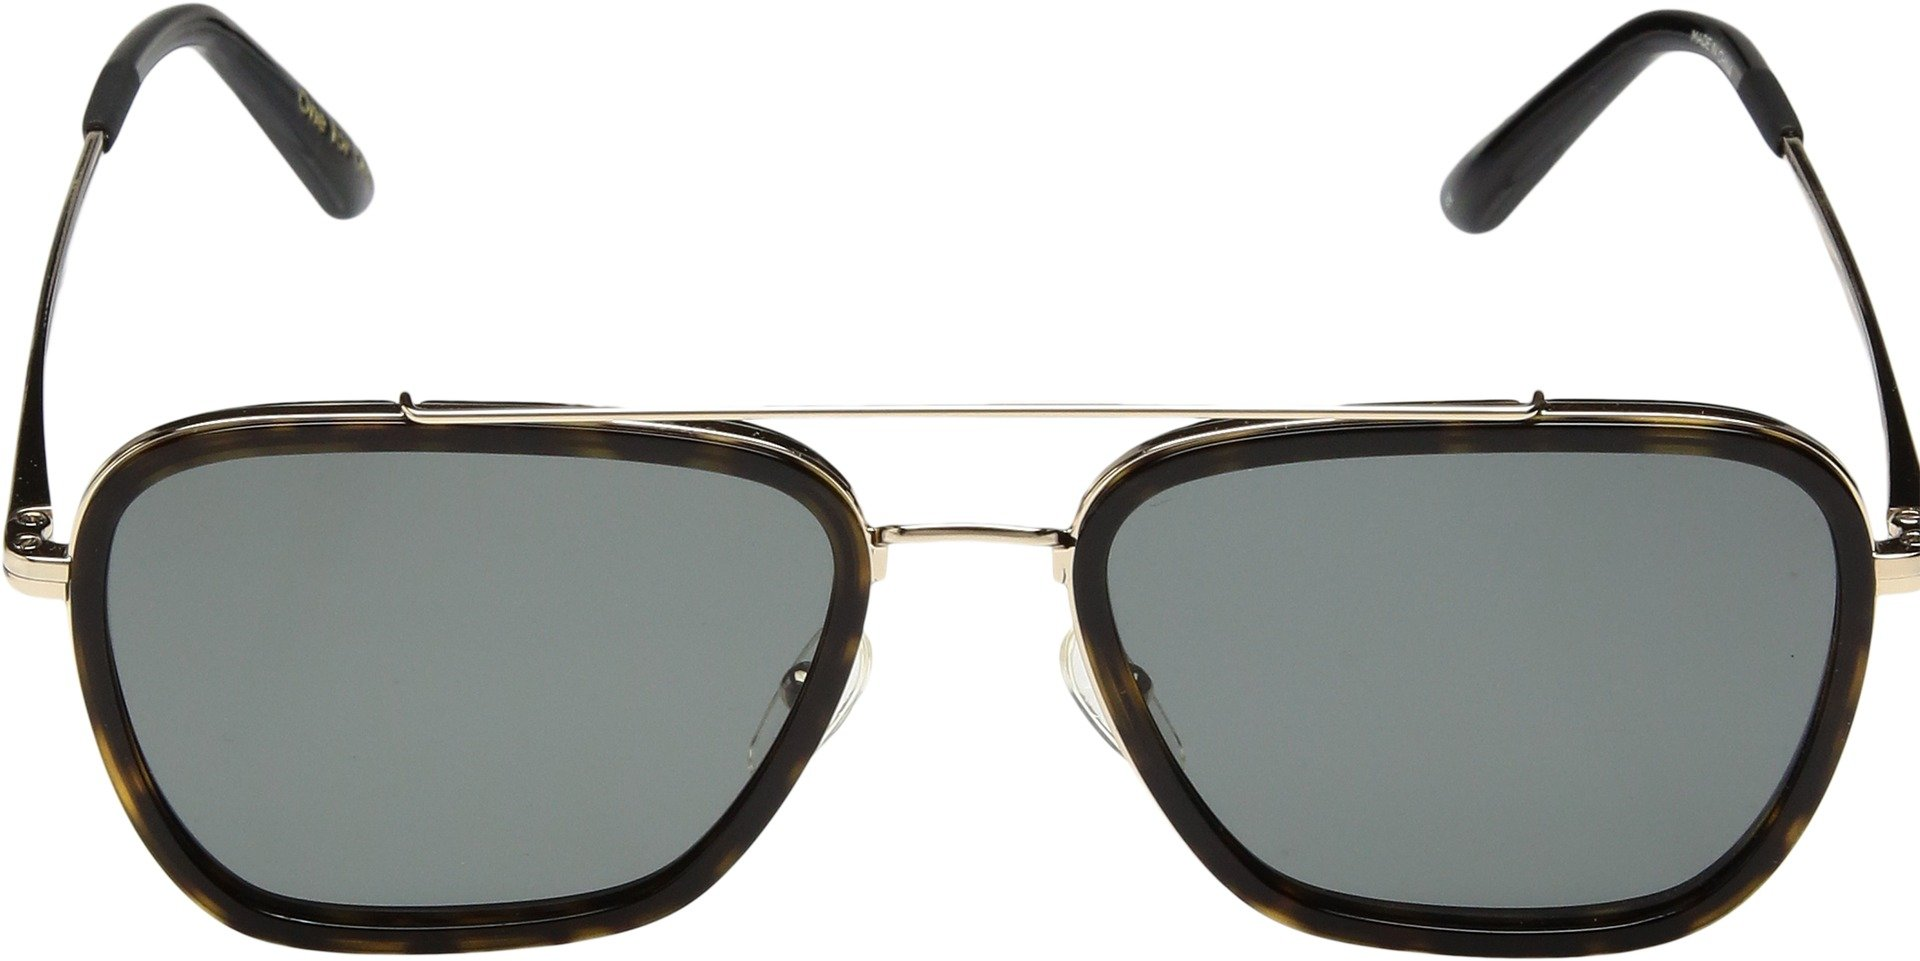 TOMS Unisex Irwin Tortoise One Size by TOMS (Image #2)